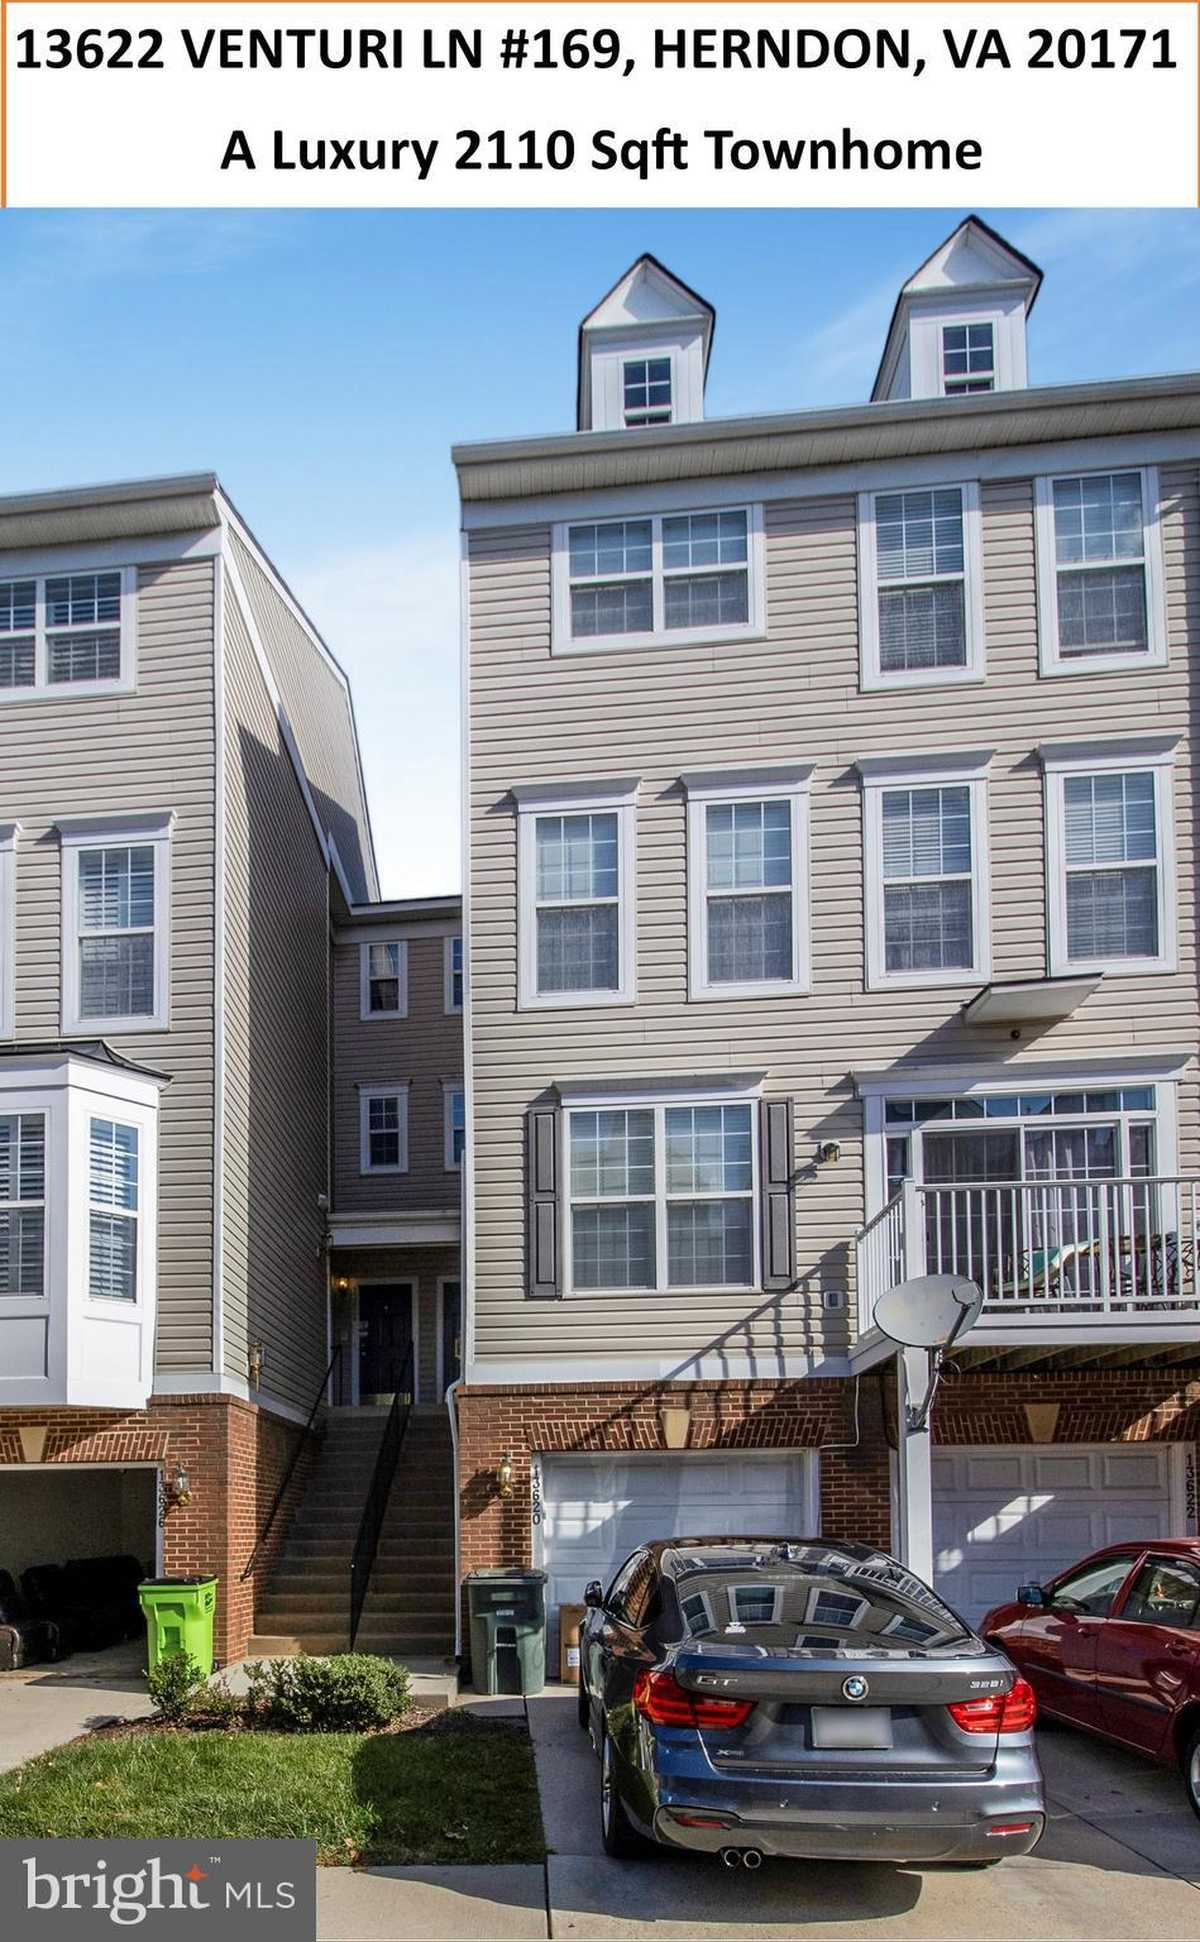 $483,900 - 3Br/3Ba -  for Sale in Coppermine Crossing, Herndon